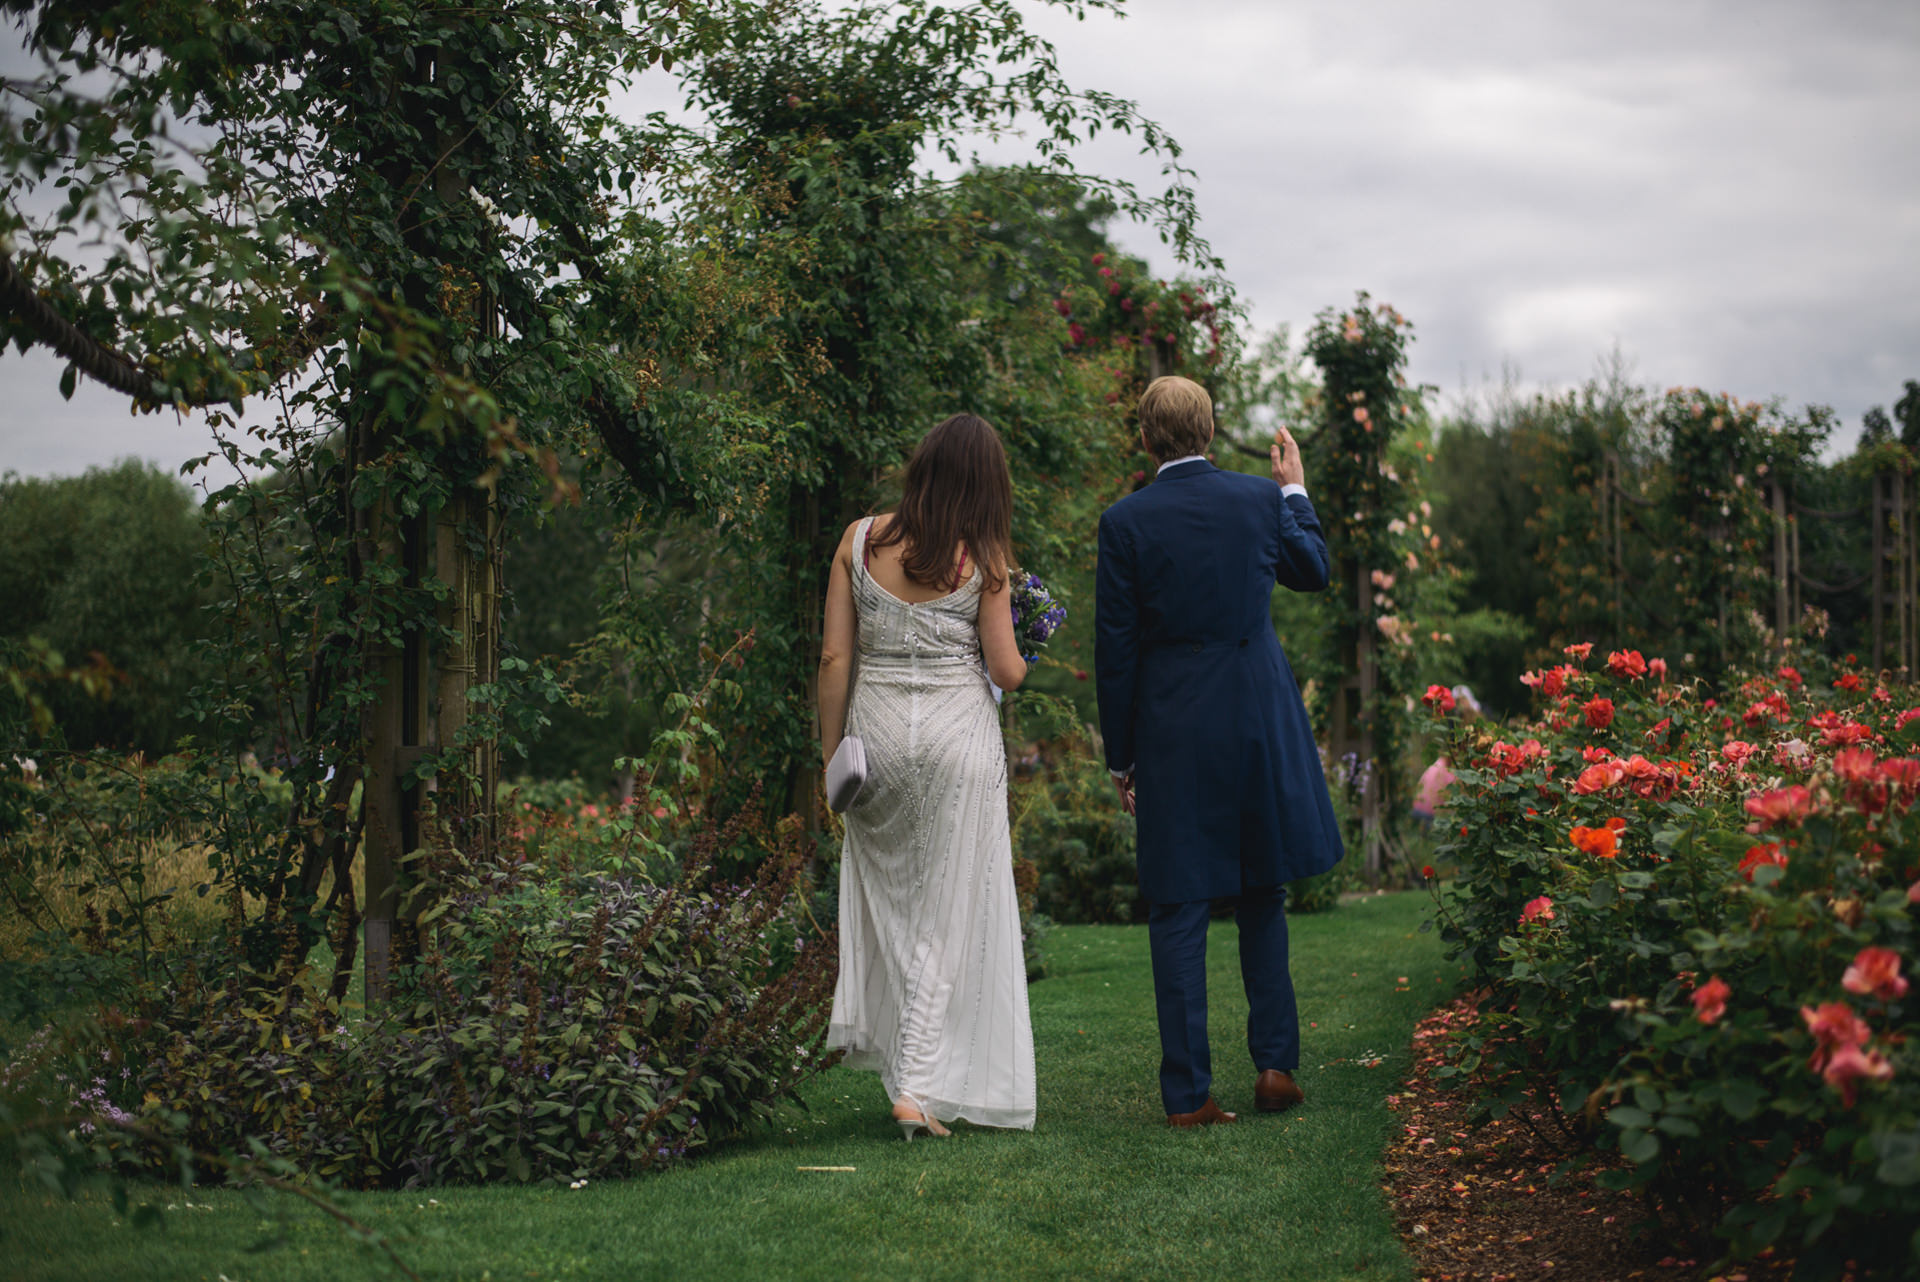 Regents park London wedding couple portraits